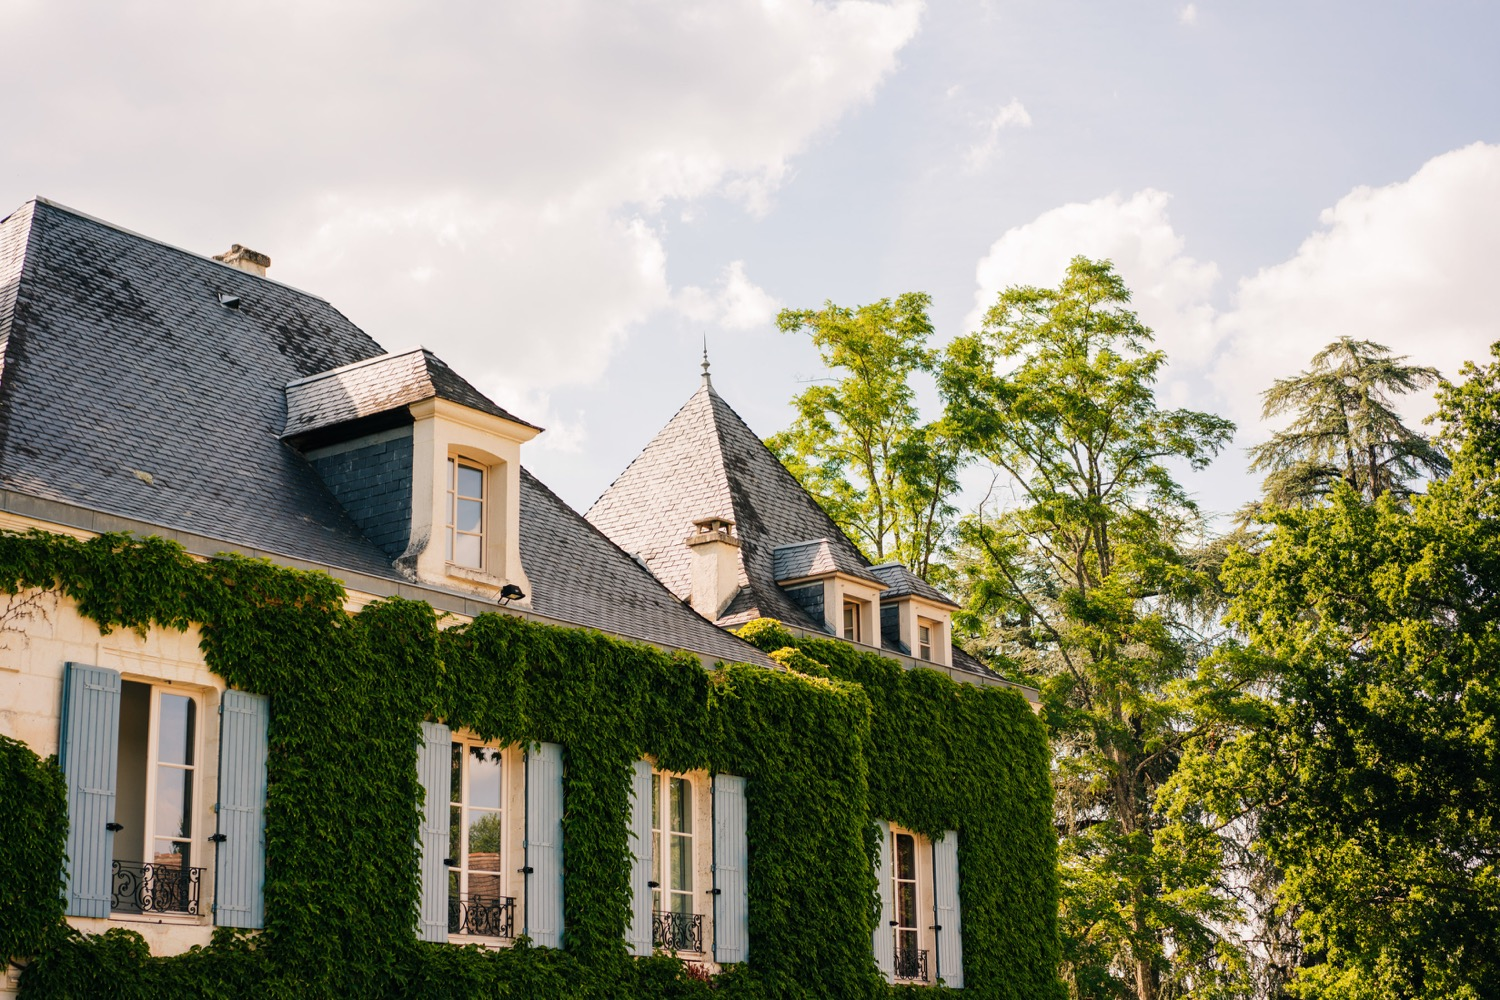 Domaine La Fauconnie mansion in France, one of the most popular wedding venues in Europe.